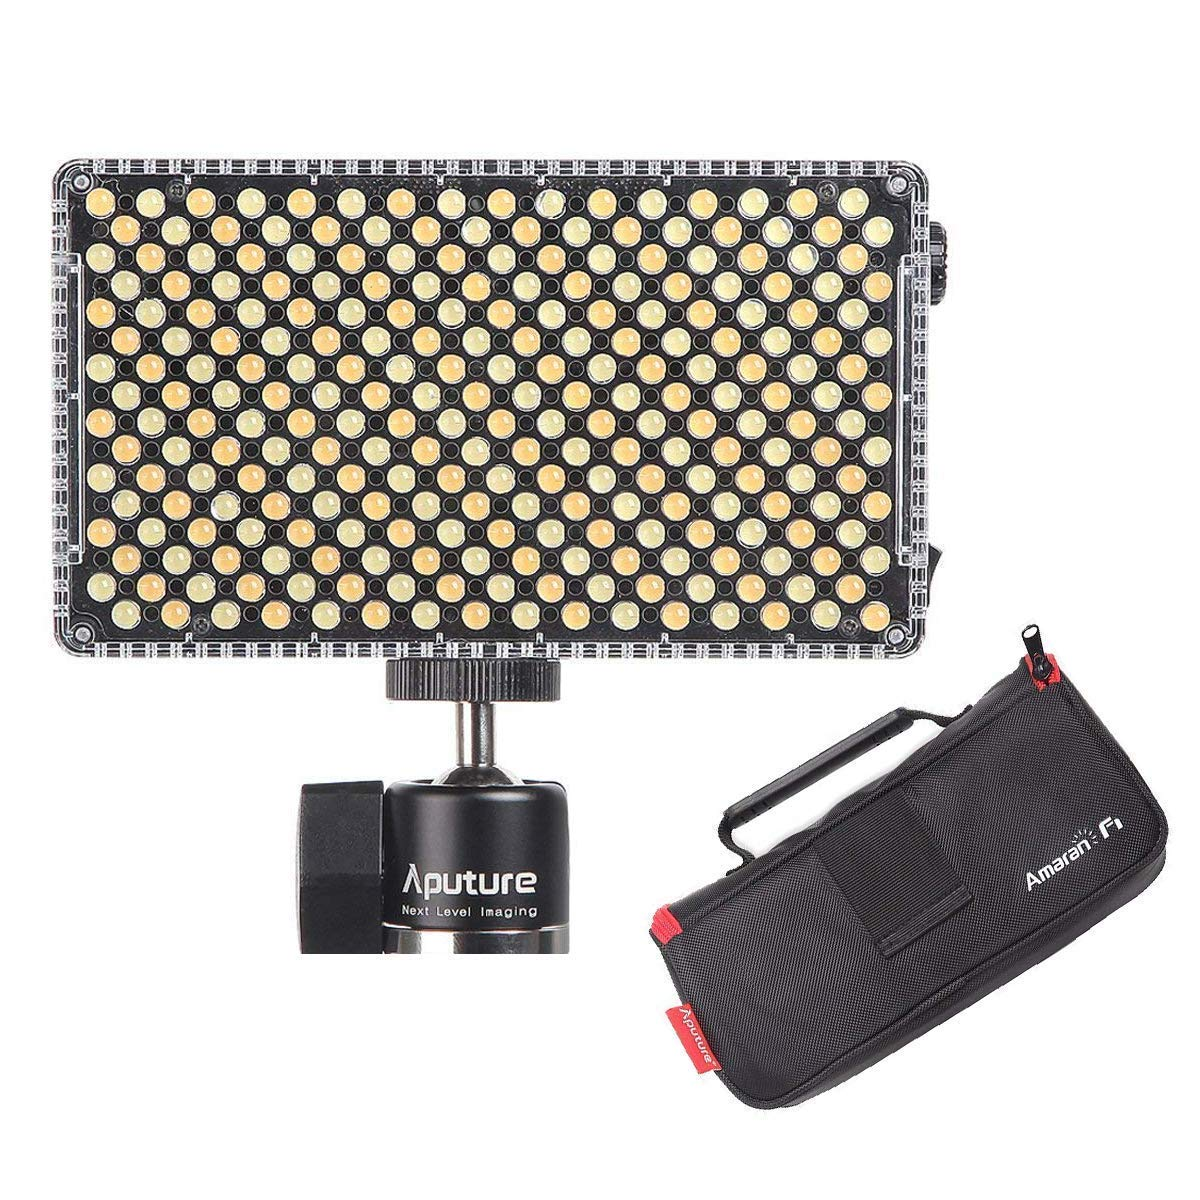 Aputure AL-F7, Aputure H198 Upgrade Ver 256 LED Bi-Color Dimmable Led Video Light, CRI95+ TLCI95+, 3200-9500K, Stepless Brightness, Multiple Power Supply Methods, Lightweight with PERGEAR Cloth by Aputure